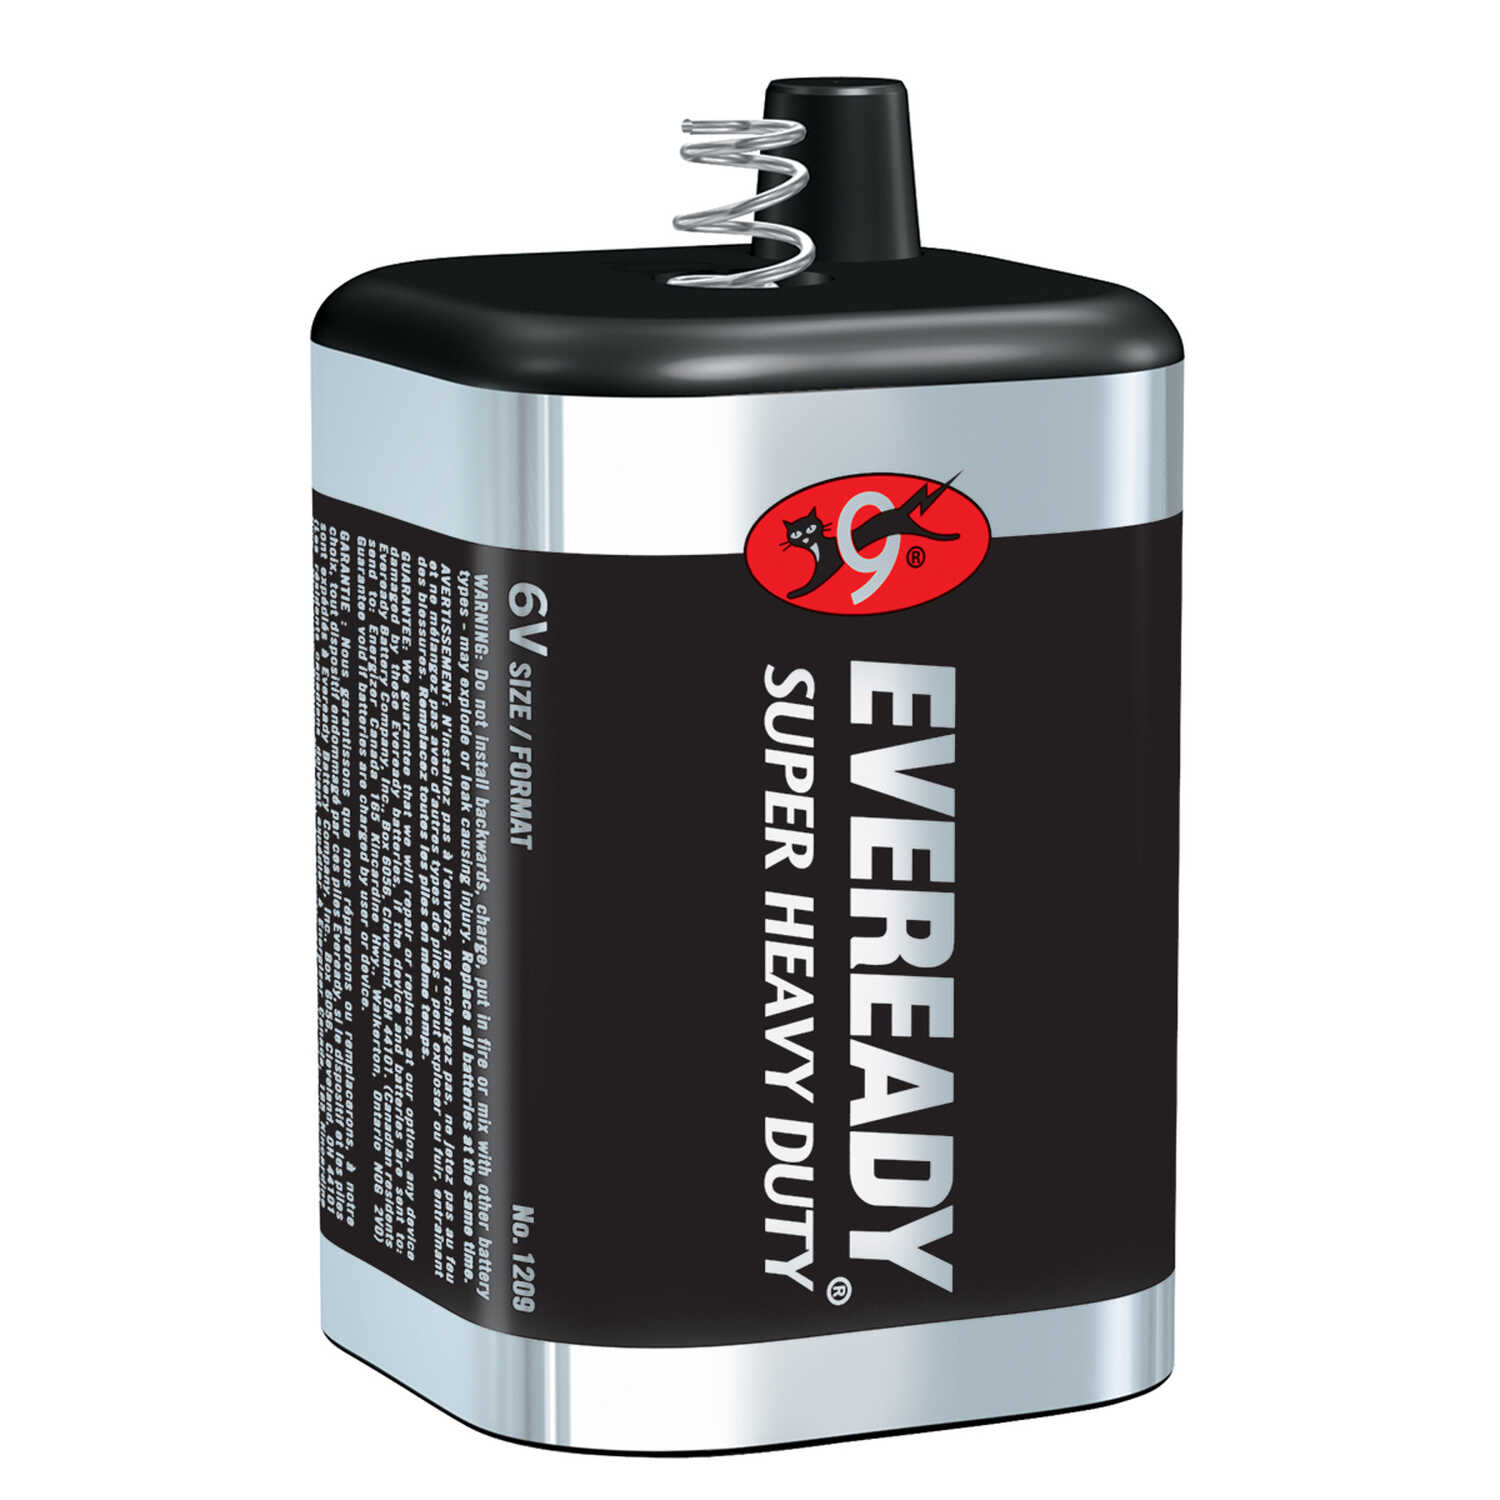 Energizer Eveready Zinc Carbon 6 Volt Lantern Battery 1 Pk Bulk